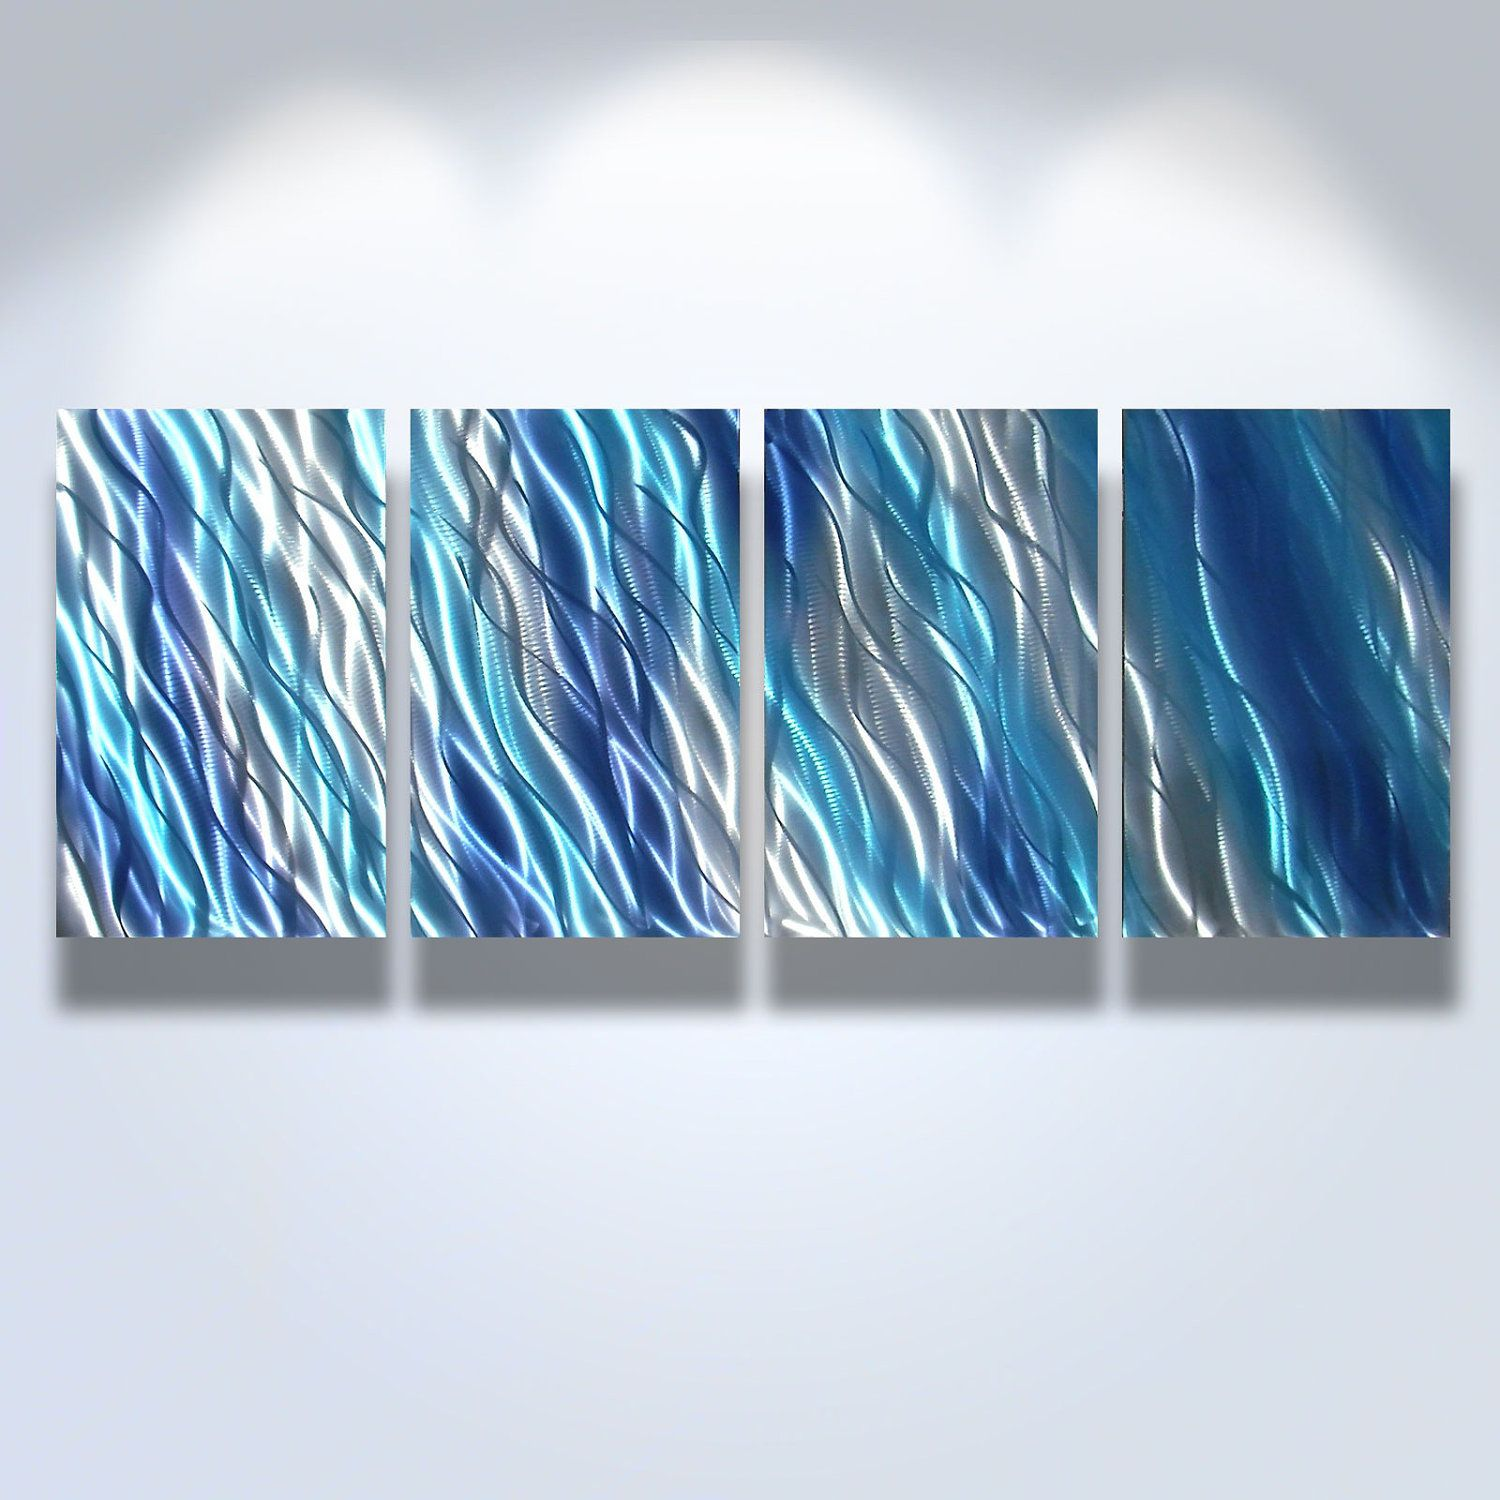 Blue Metal Wall Art Entrancing Metal Wall Art Decor Abstract Contemporary Modern Sculpture Design Inspiration